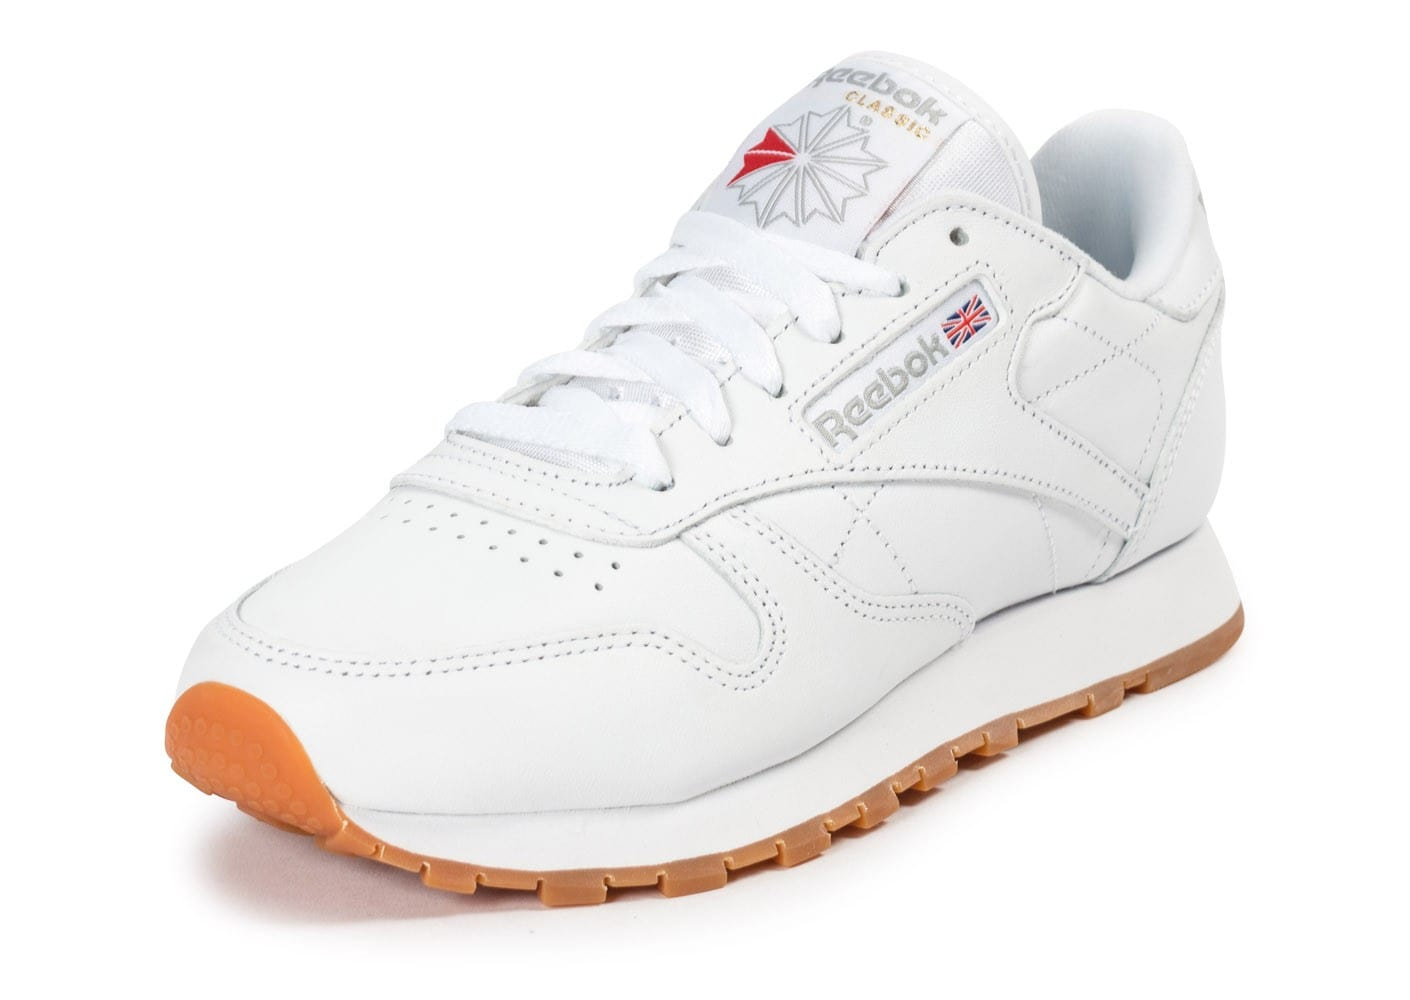 432b3ac1d39e6 Reebok Classic Leather W Gum blanche - Chaussures Baskets femme ...